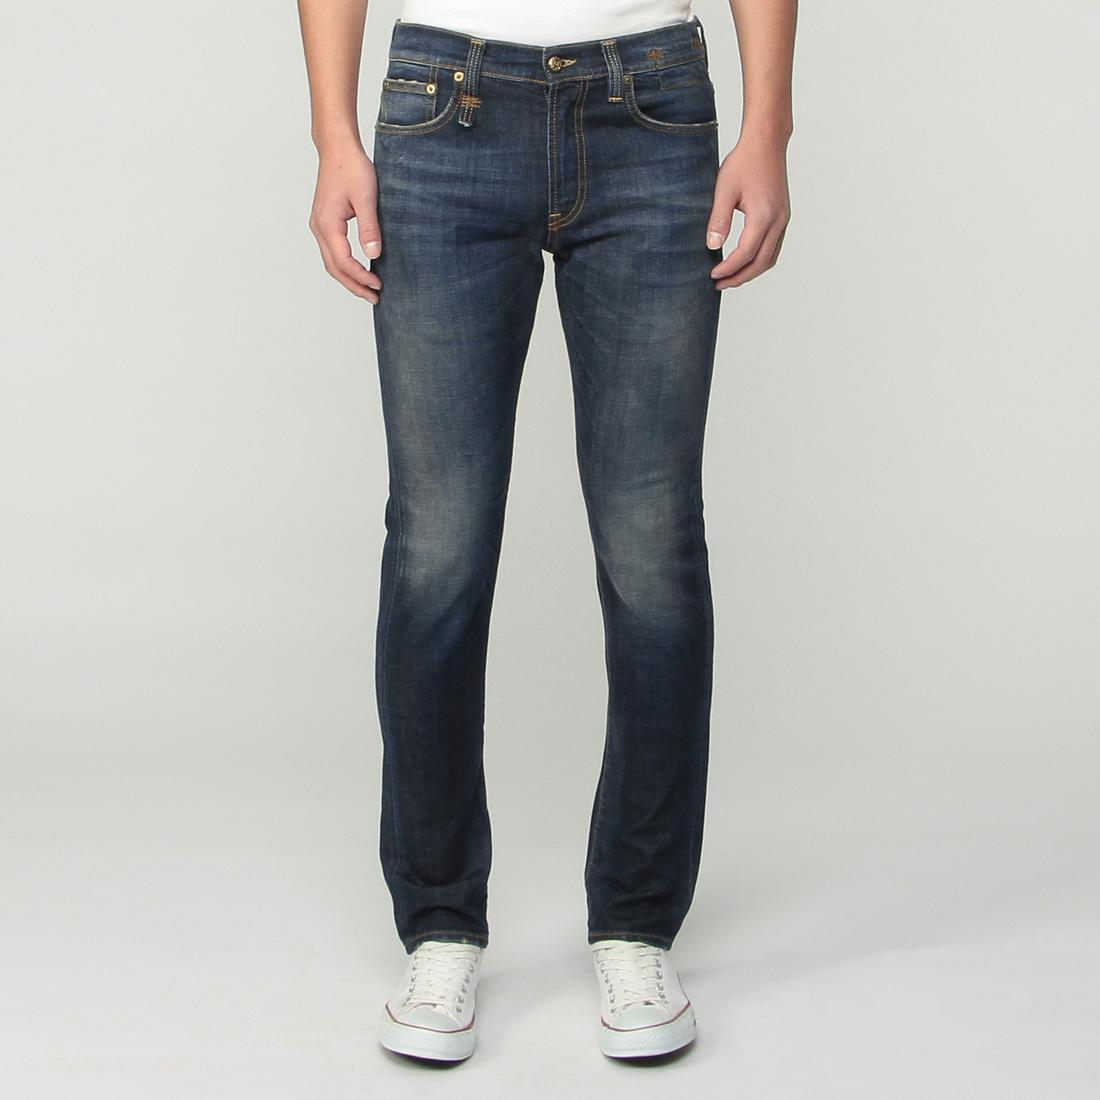 201605_mens-denim-5_009